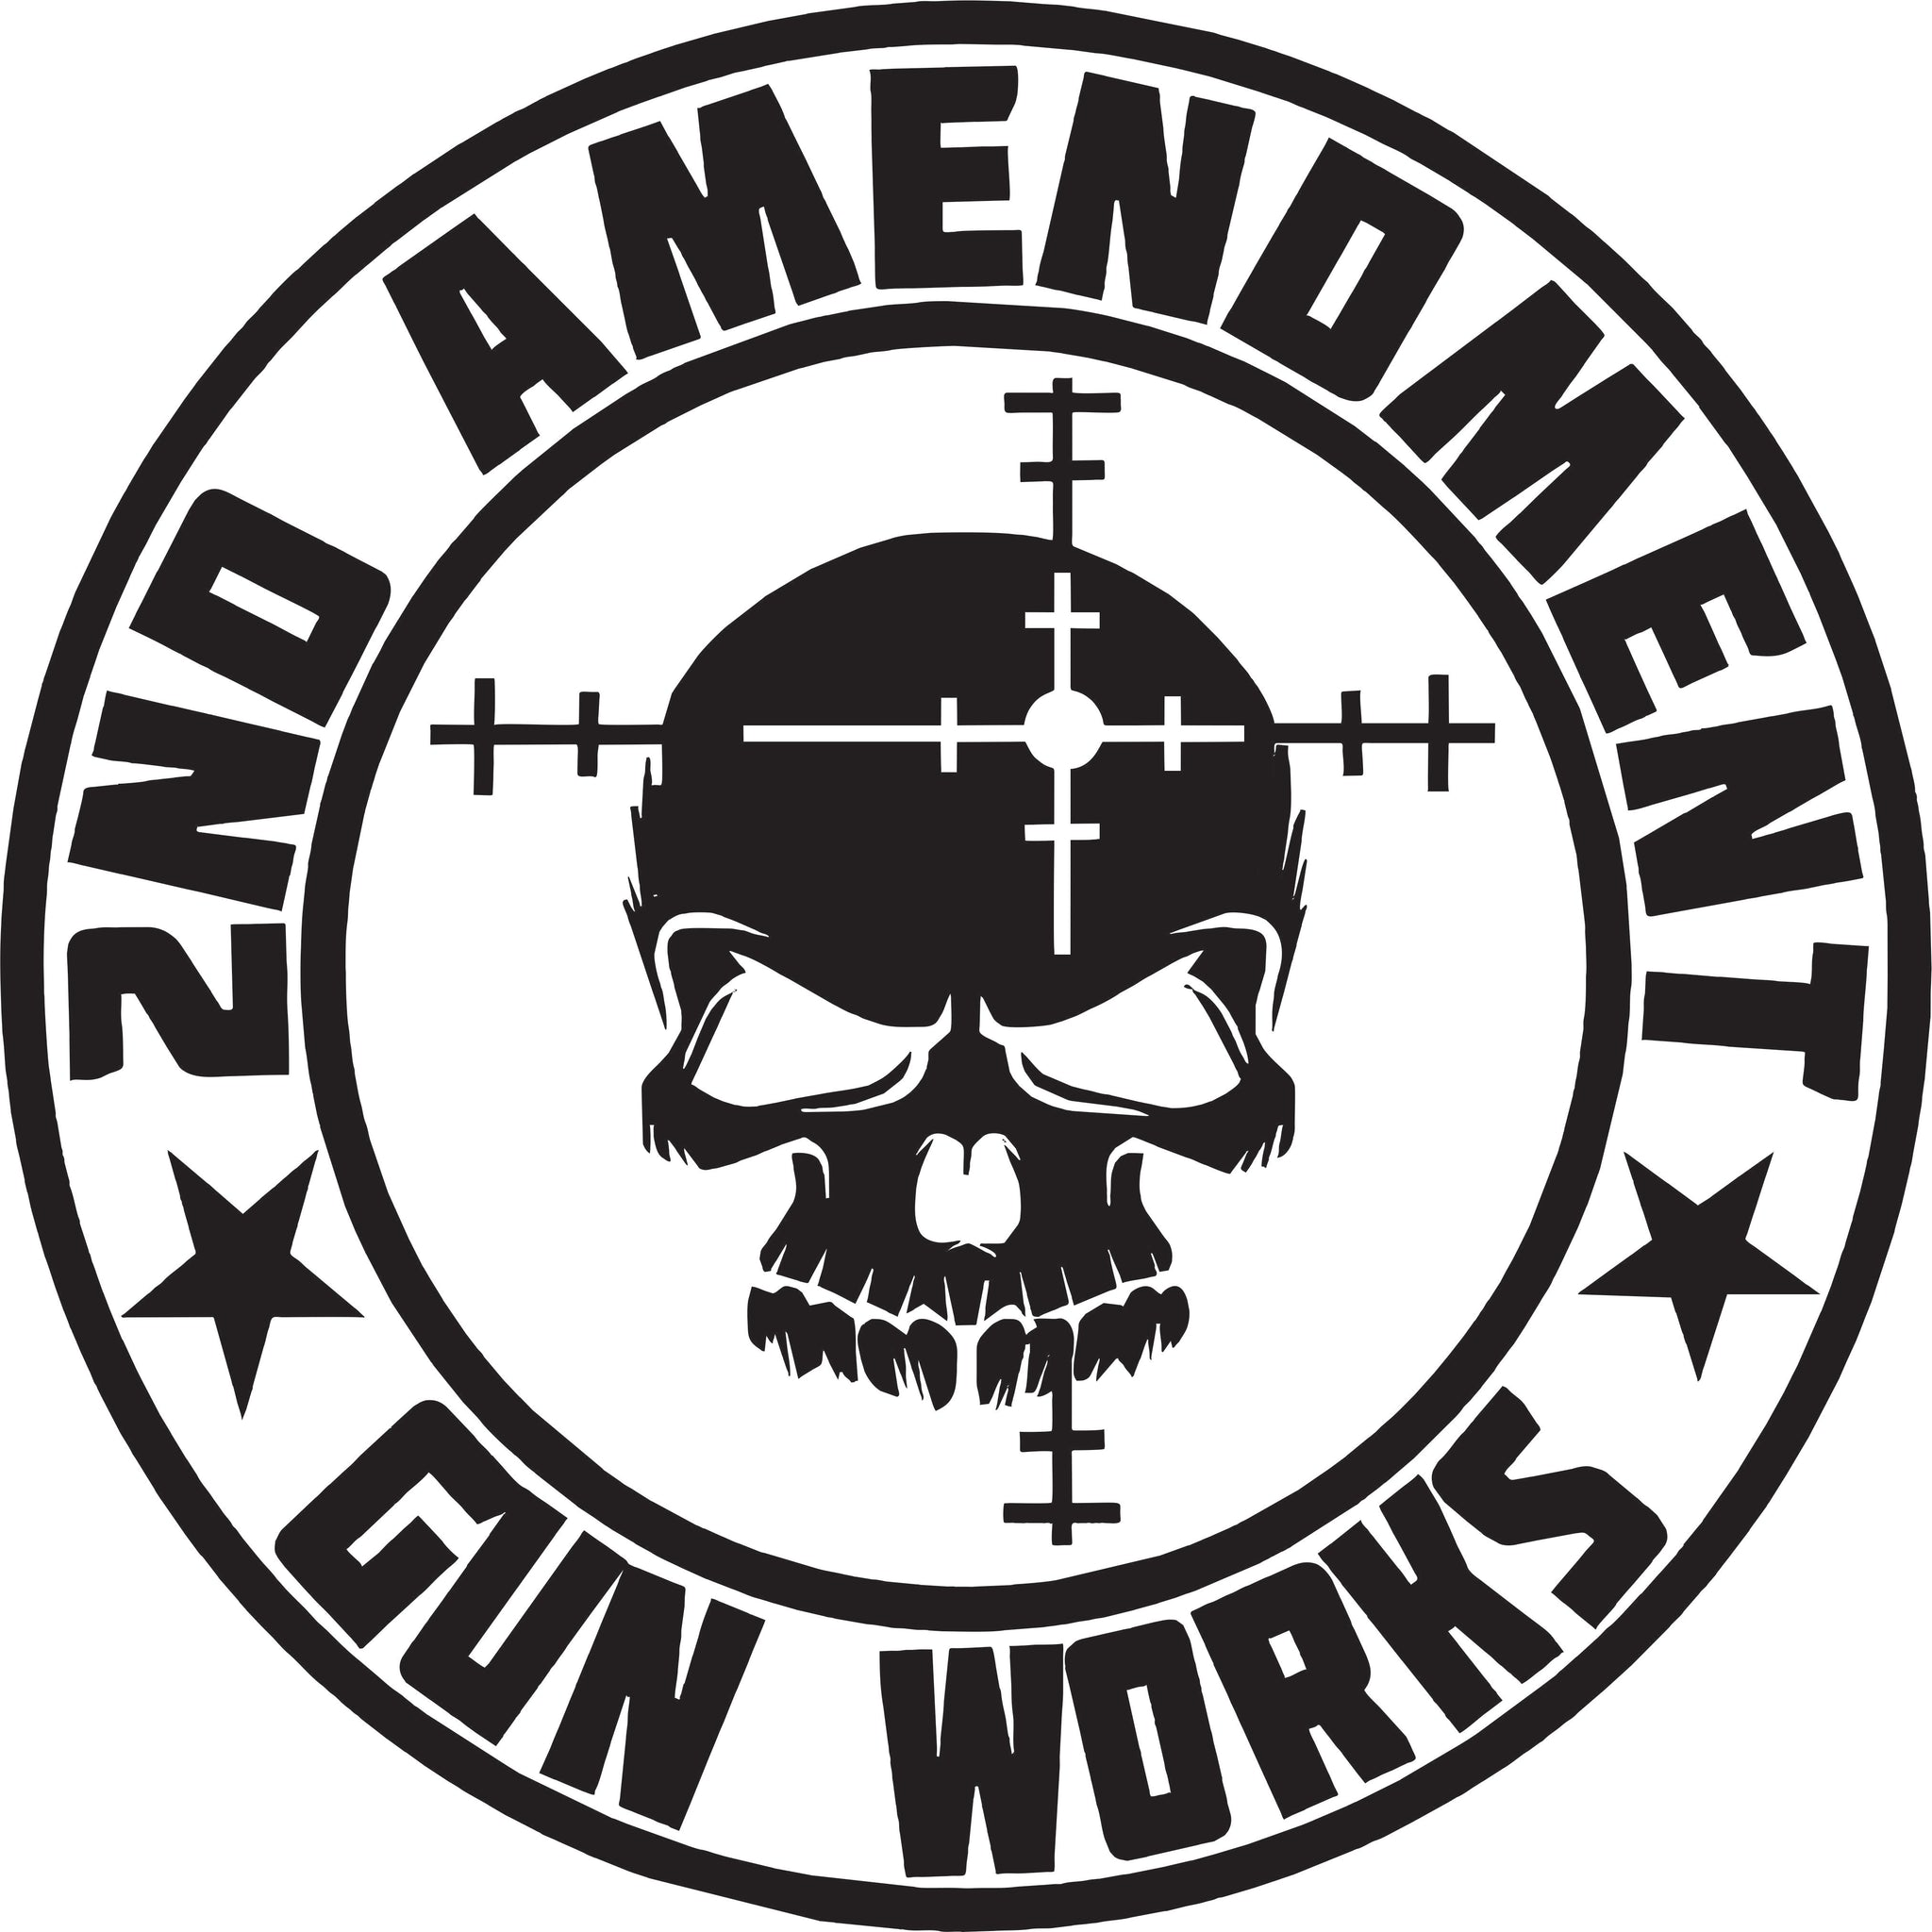 "2nd Amendment Gun Works Circle 6"" Vinyl Decals - 2nd Amendment Gun Works"